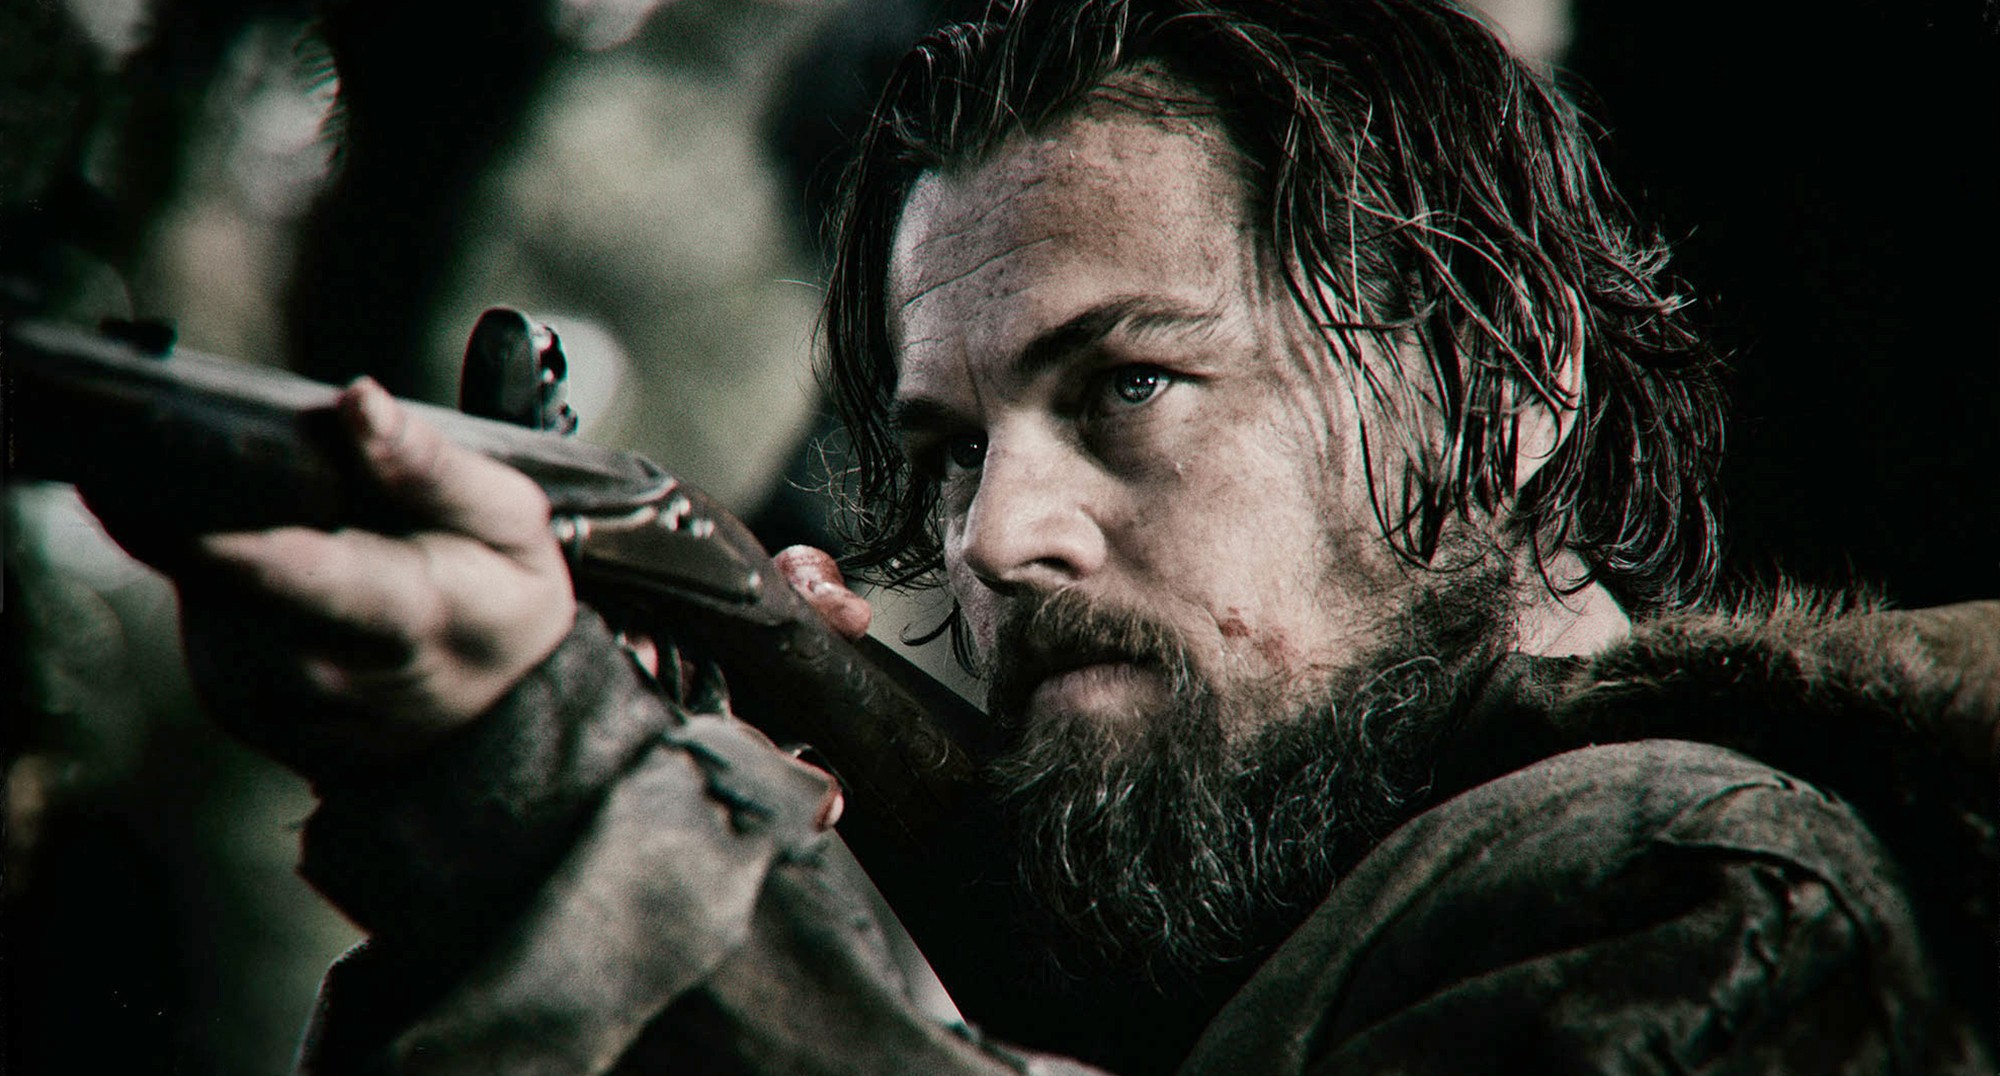 watch-incredible-new-trailer-for-the-revenant